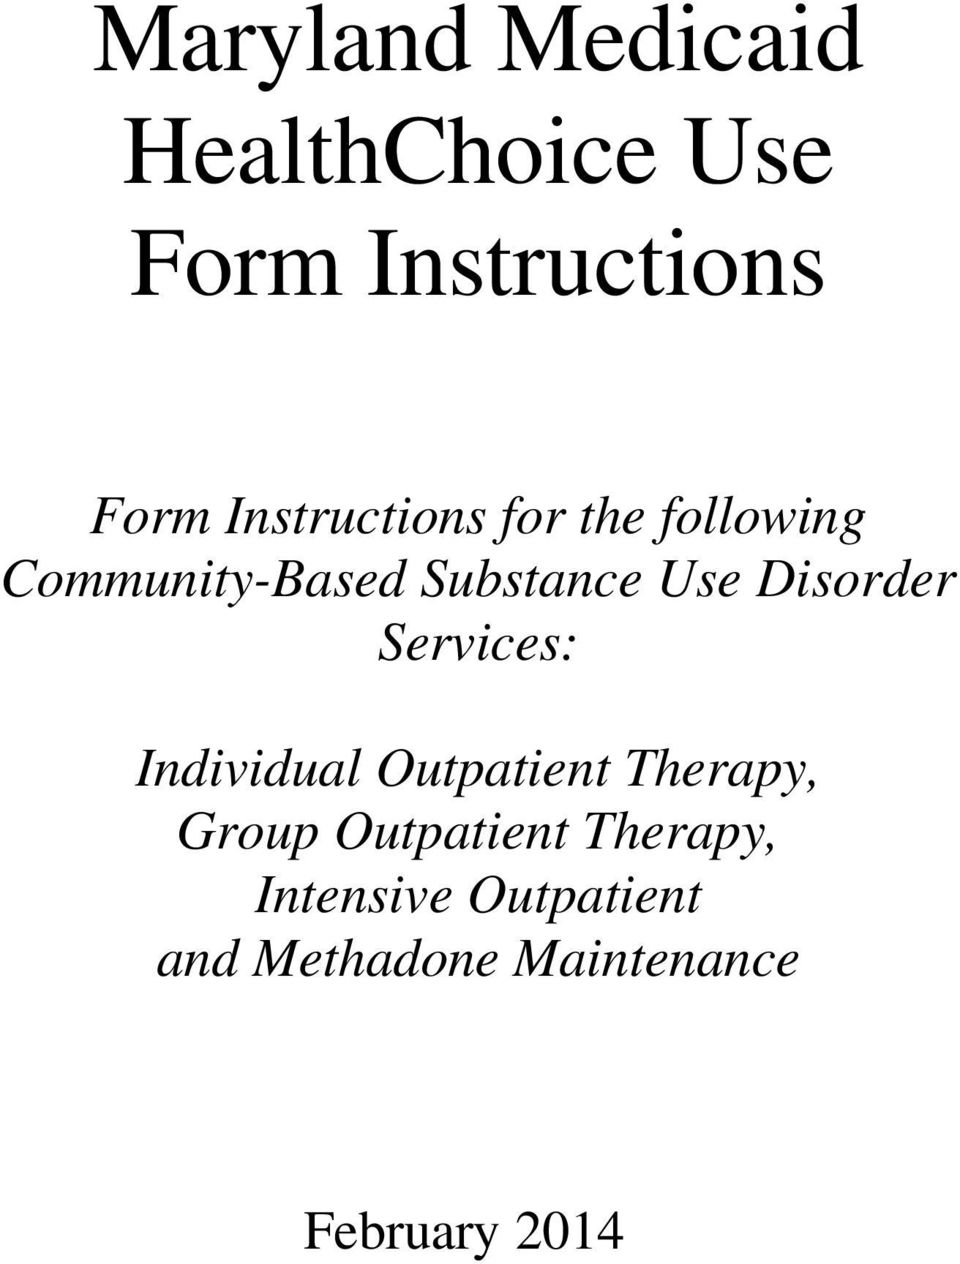 Disorder Services: Individual Outpatient Therapy, Group